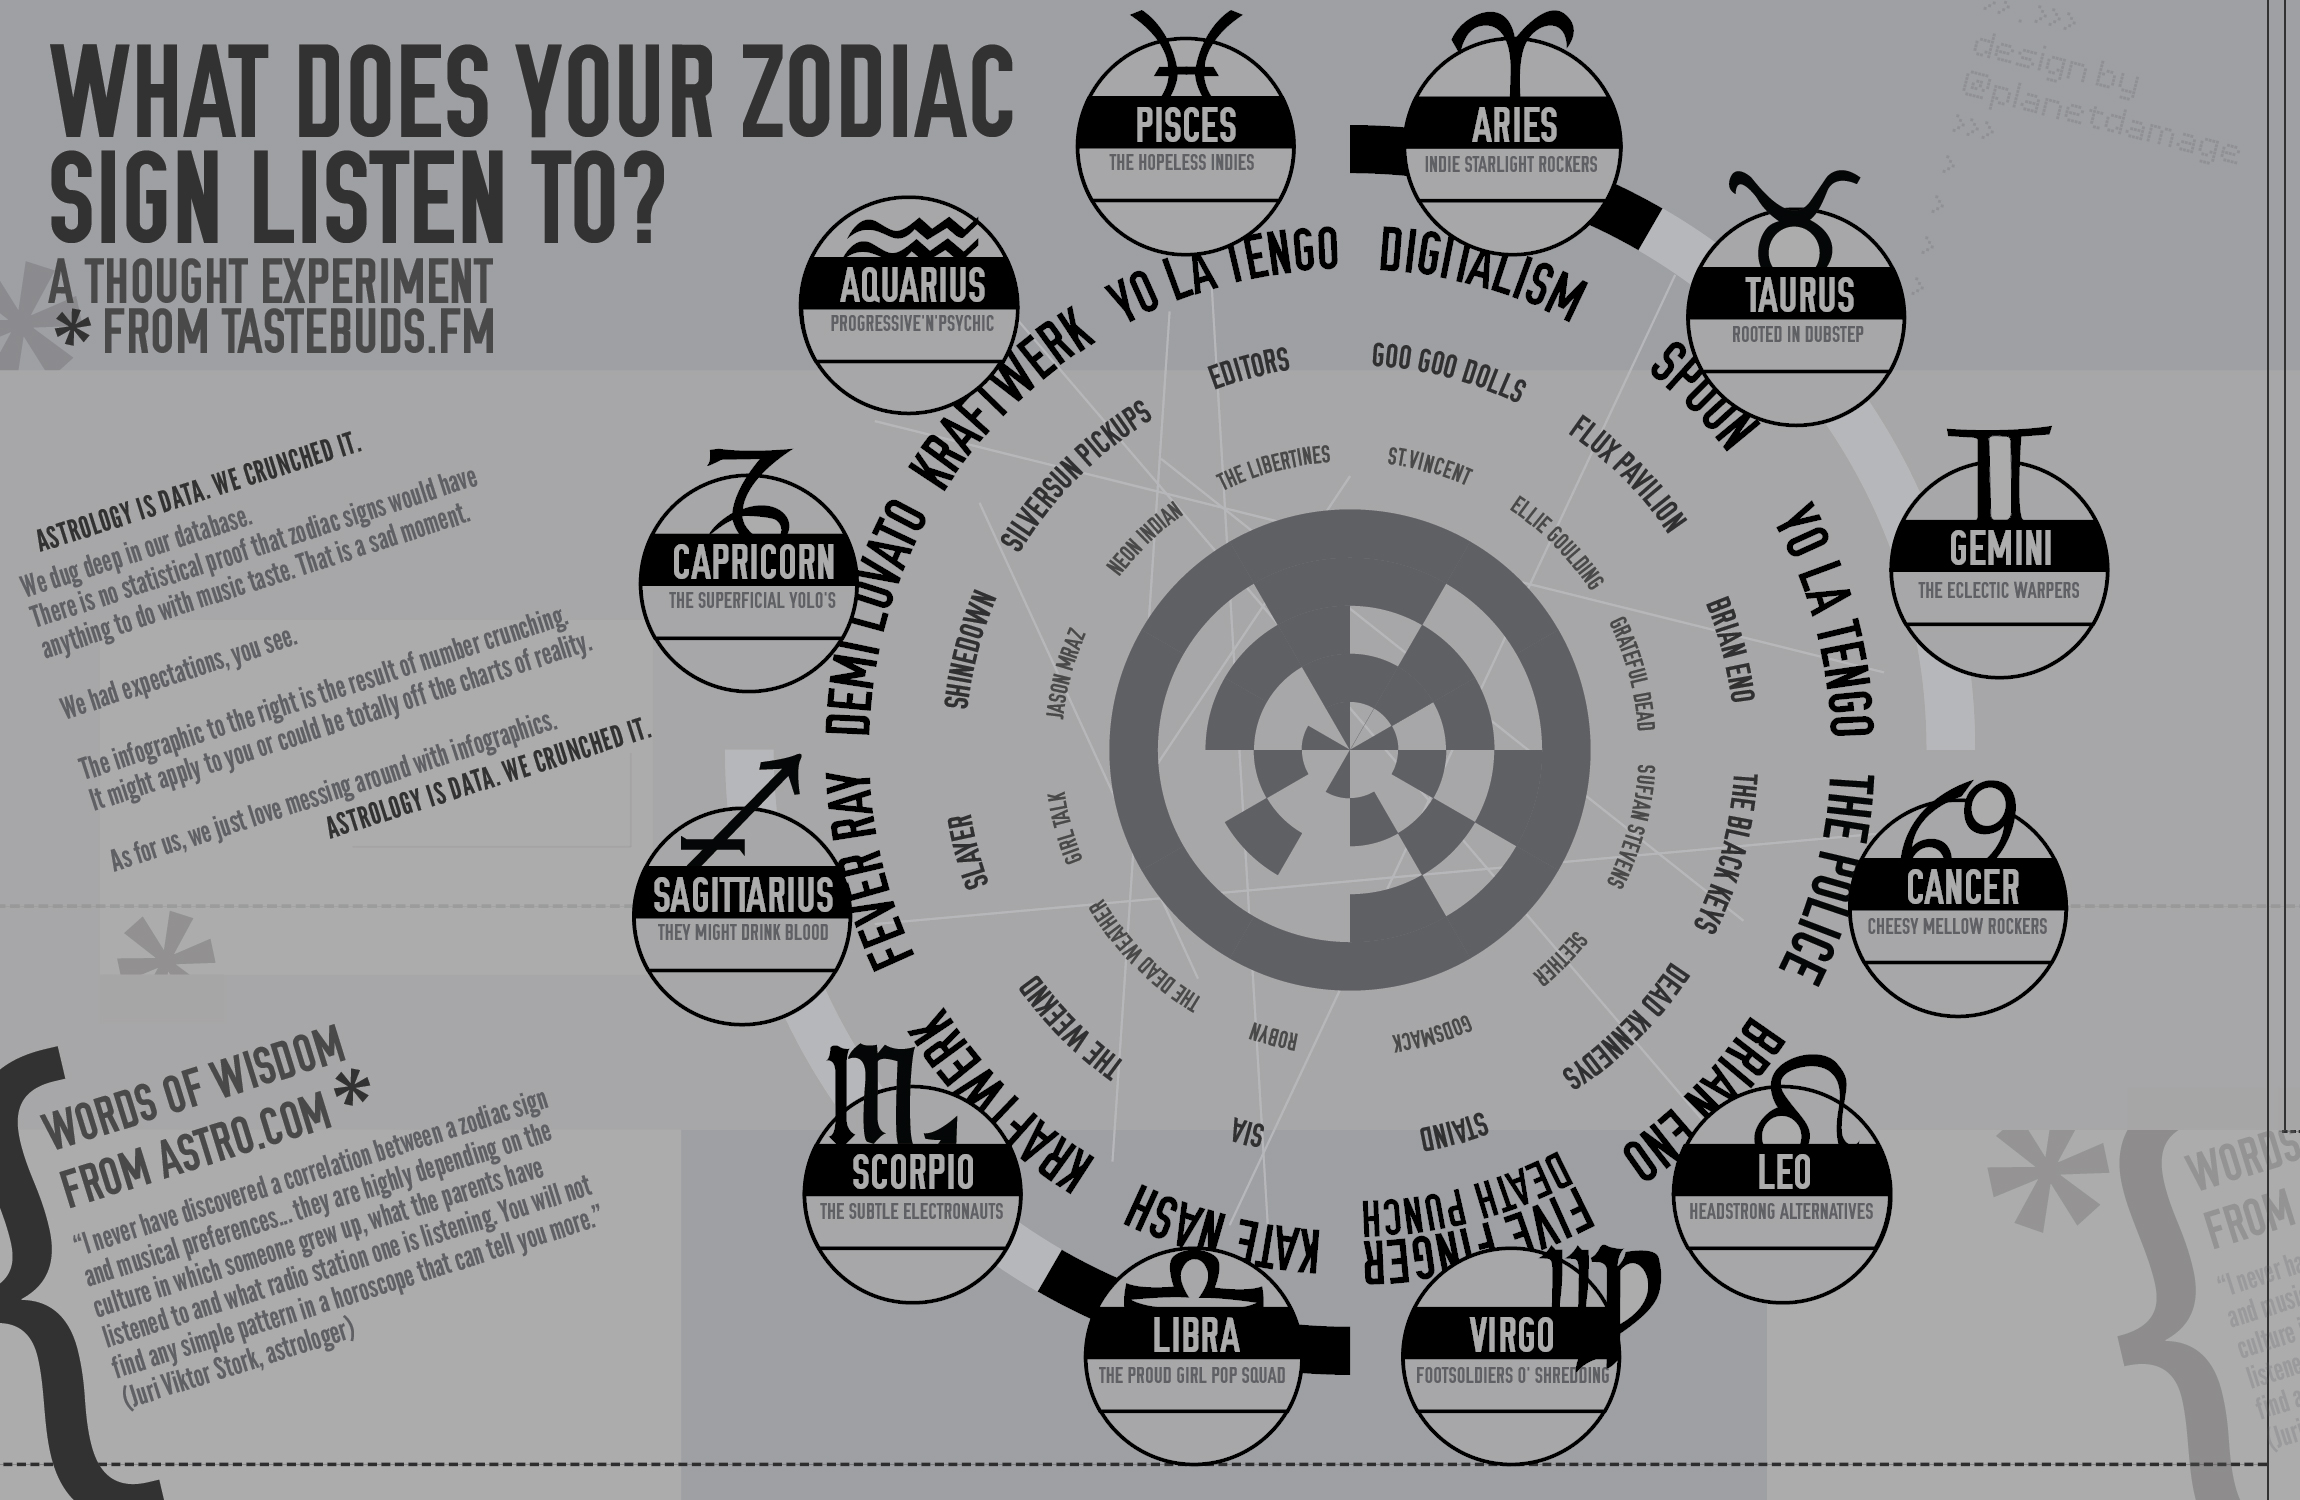 What Does Your Zodiac Sign Listen To?